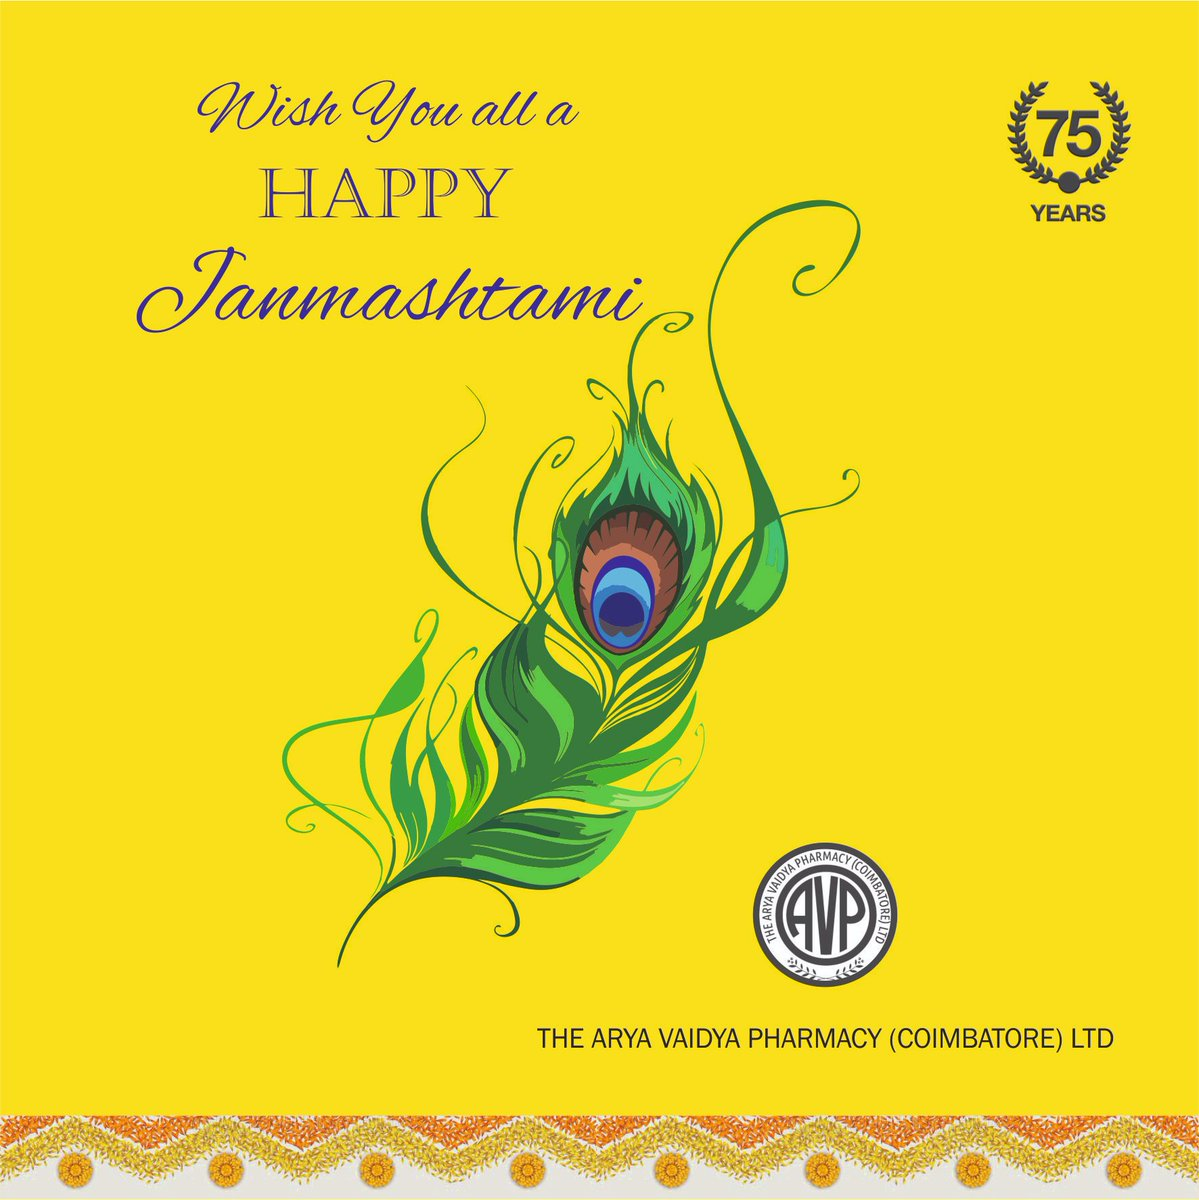 #HappyJanmashtami from all of us at Arya Vaidya Pharmacy!